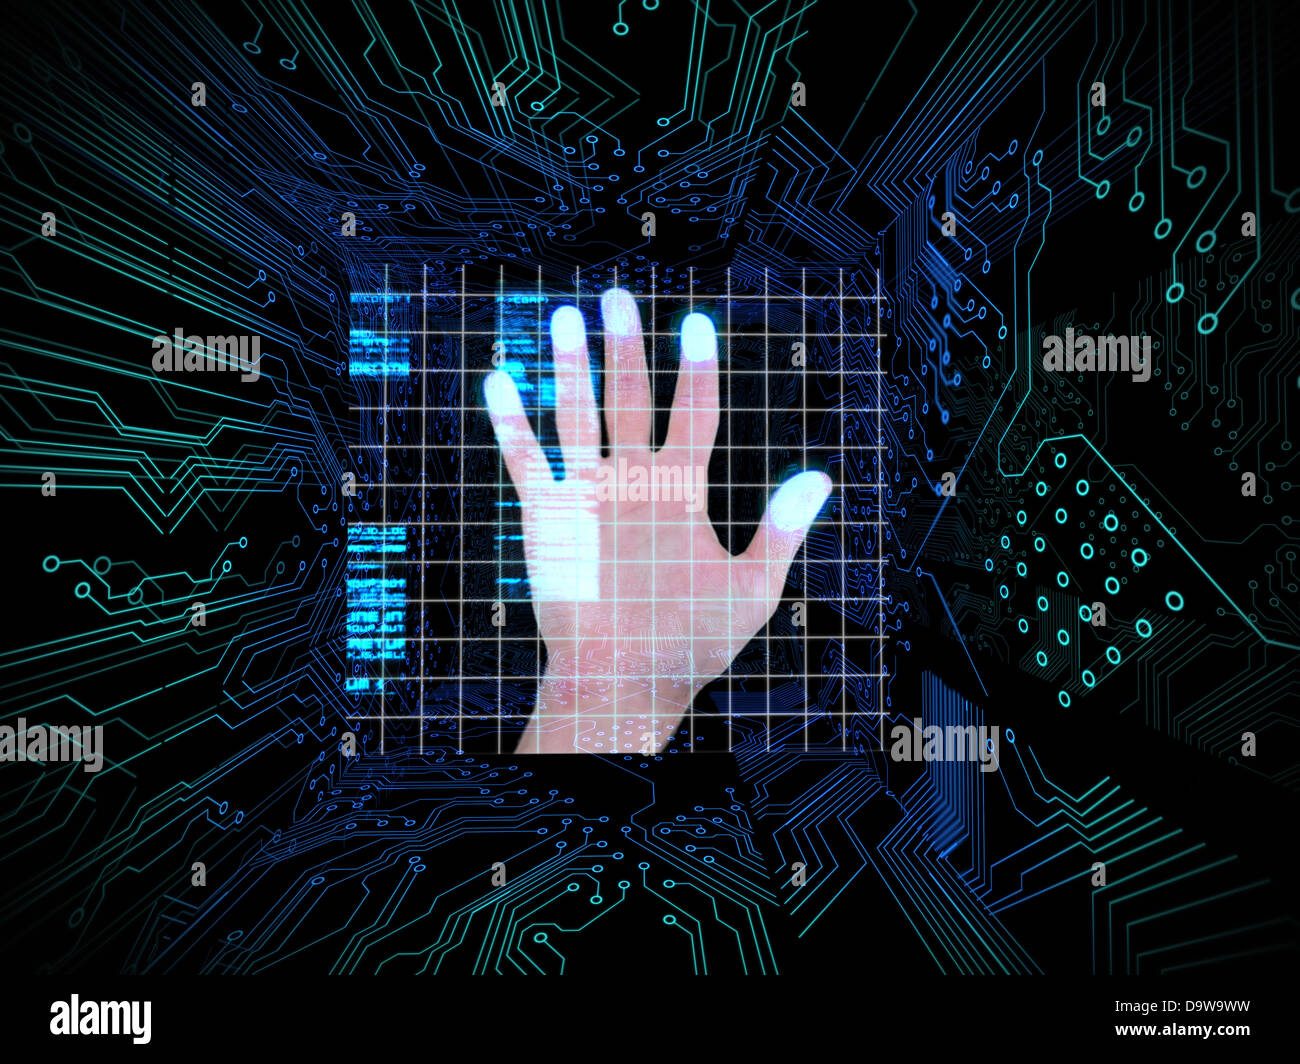 Print Hand Circuit Board Stock Photos Palm In The Middle Of Image